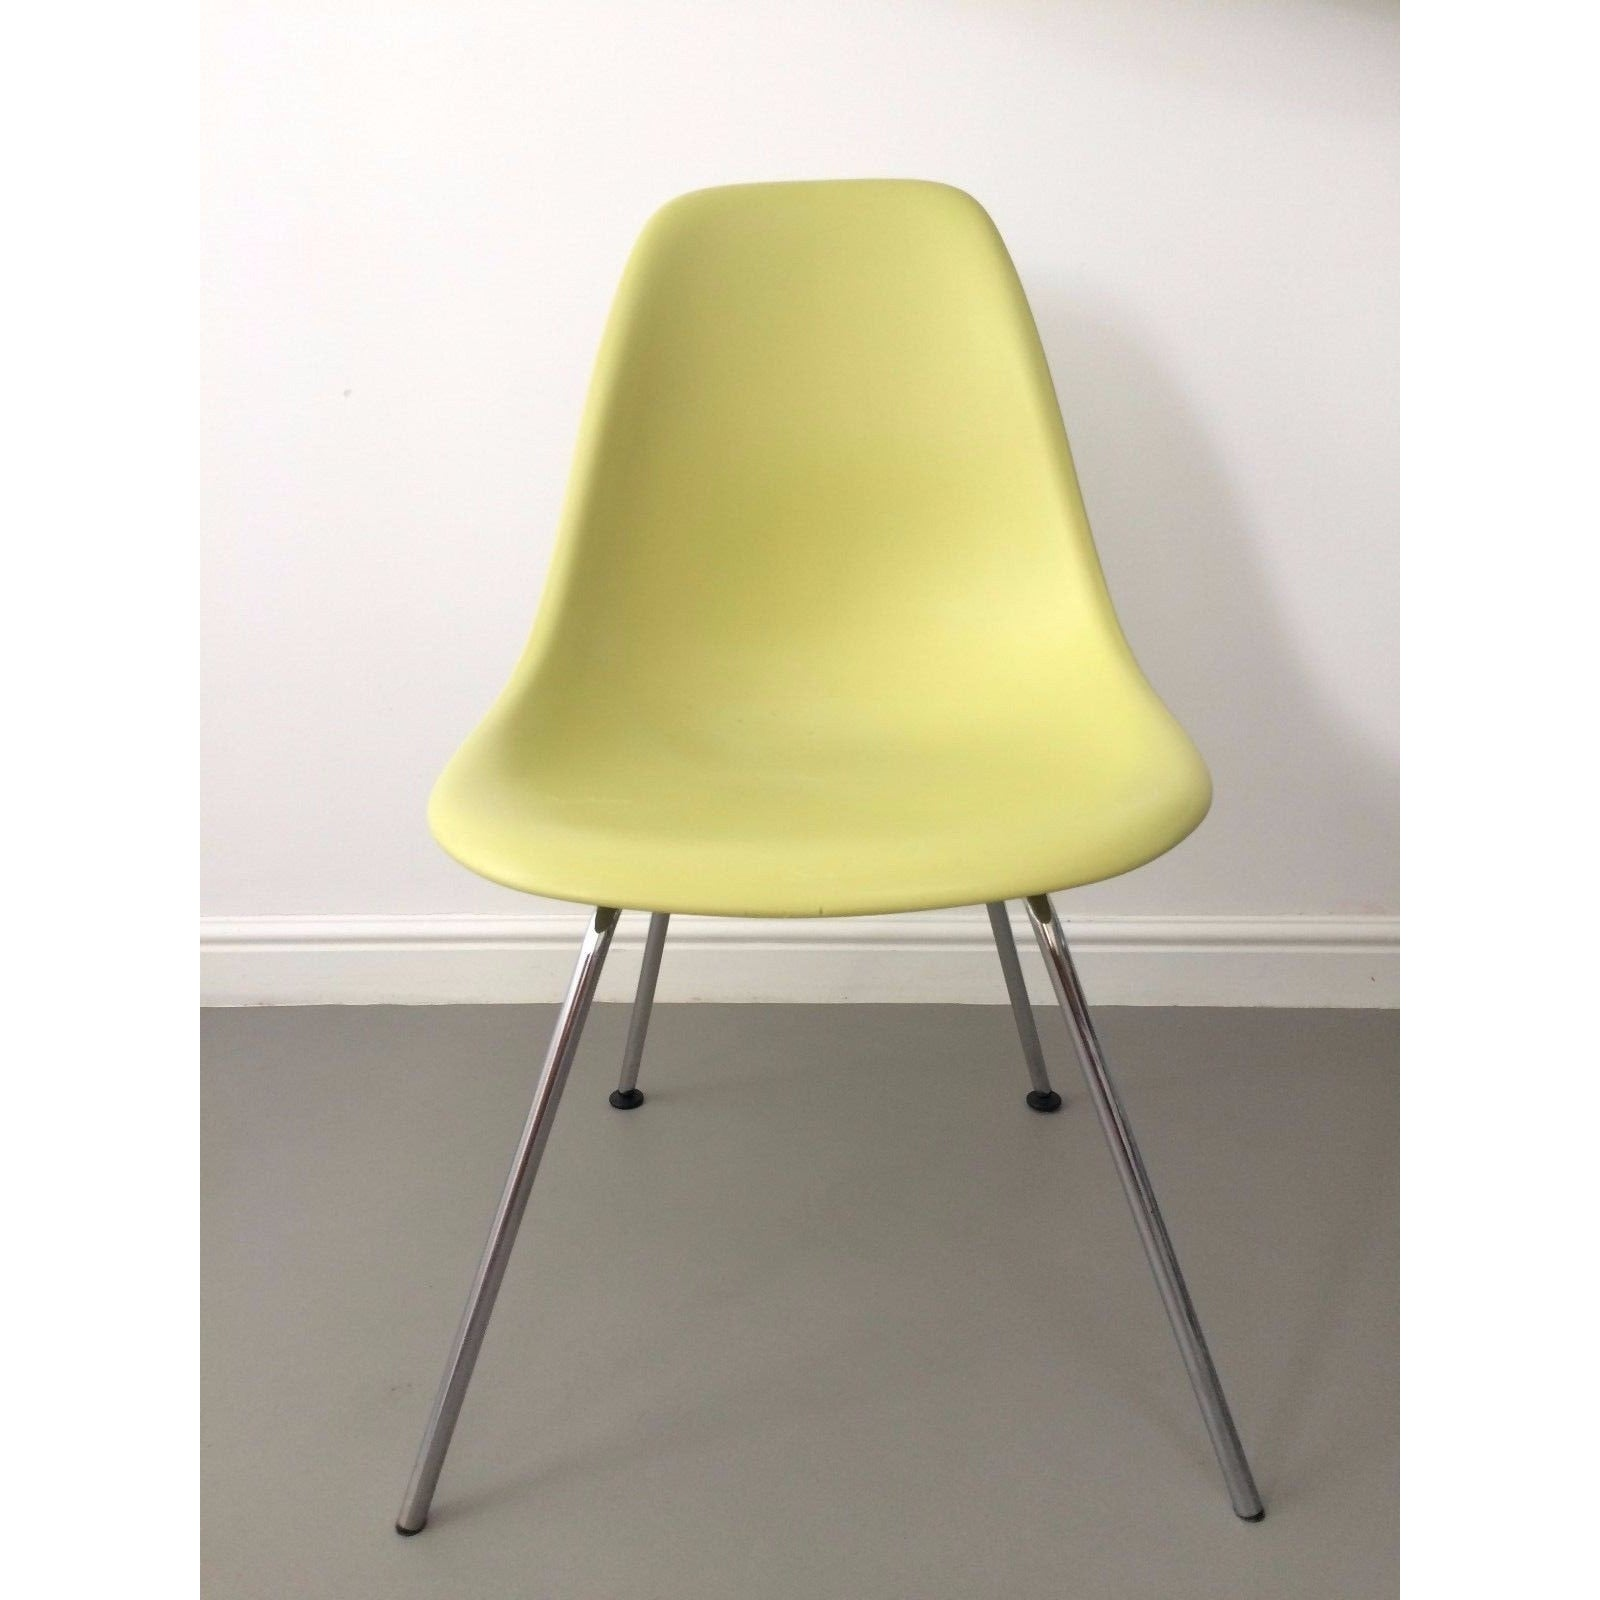 Eames Chair Second Hand Household Furniture For Sale In